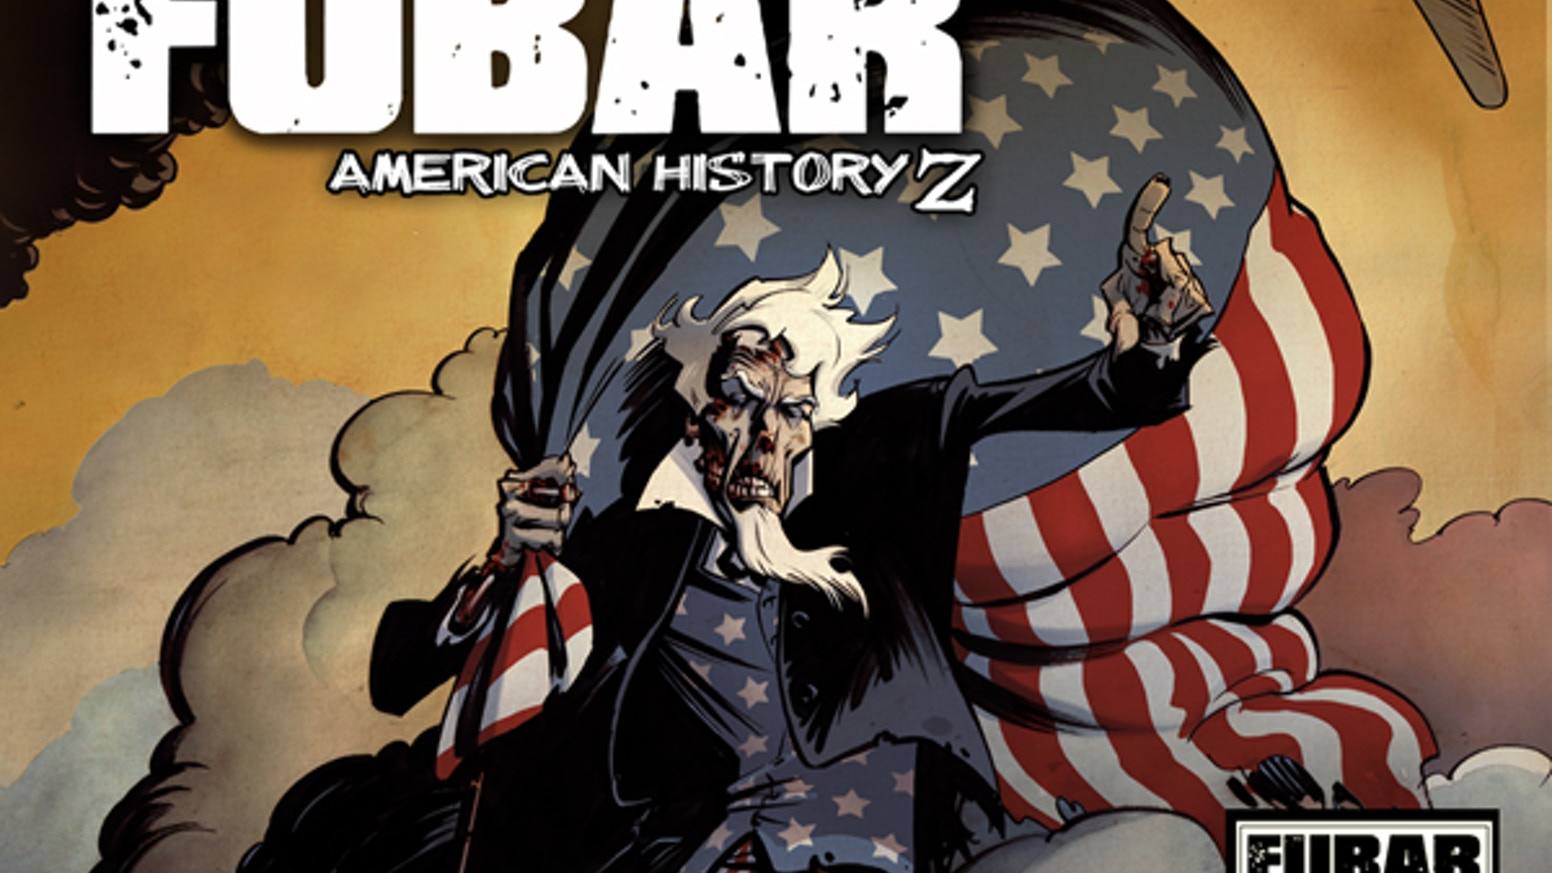 60 short comic stories totaling 428 pages, celebrating 236 years of the American experience... with zombies.